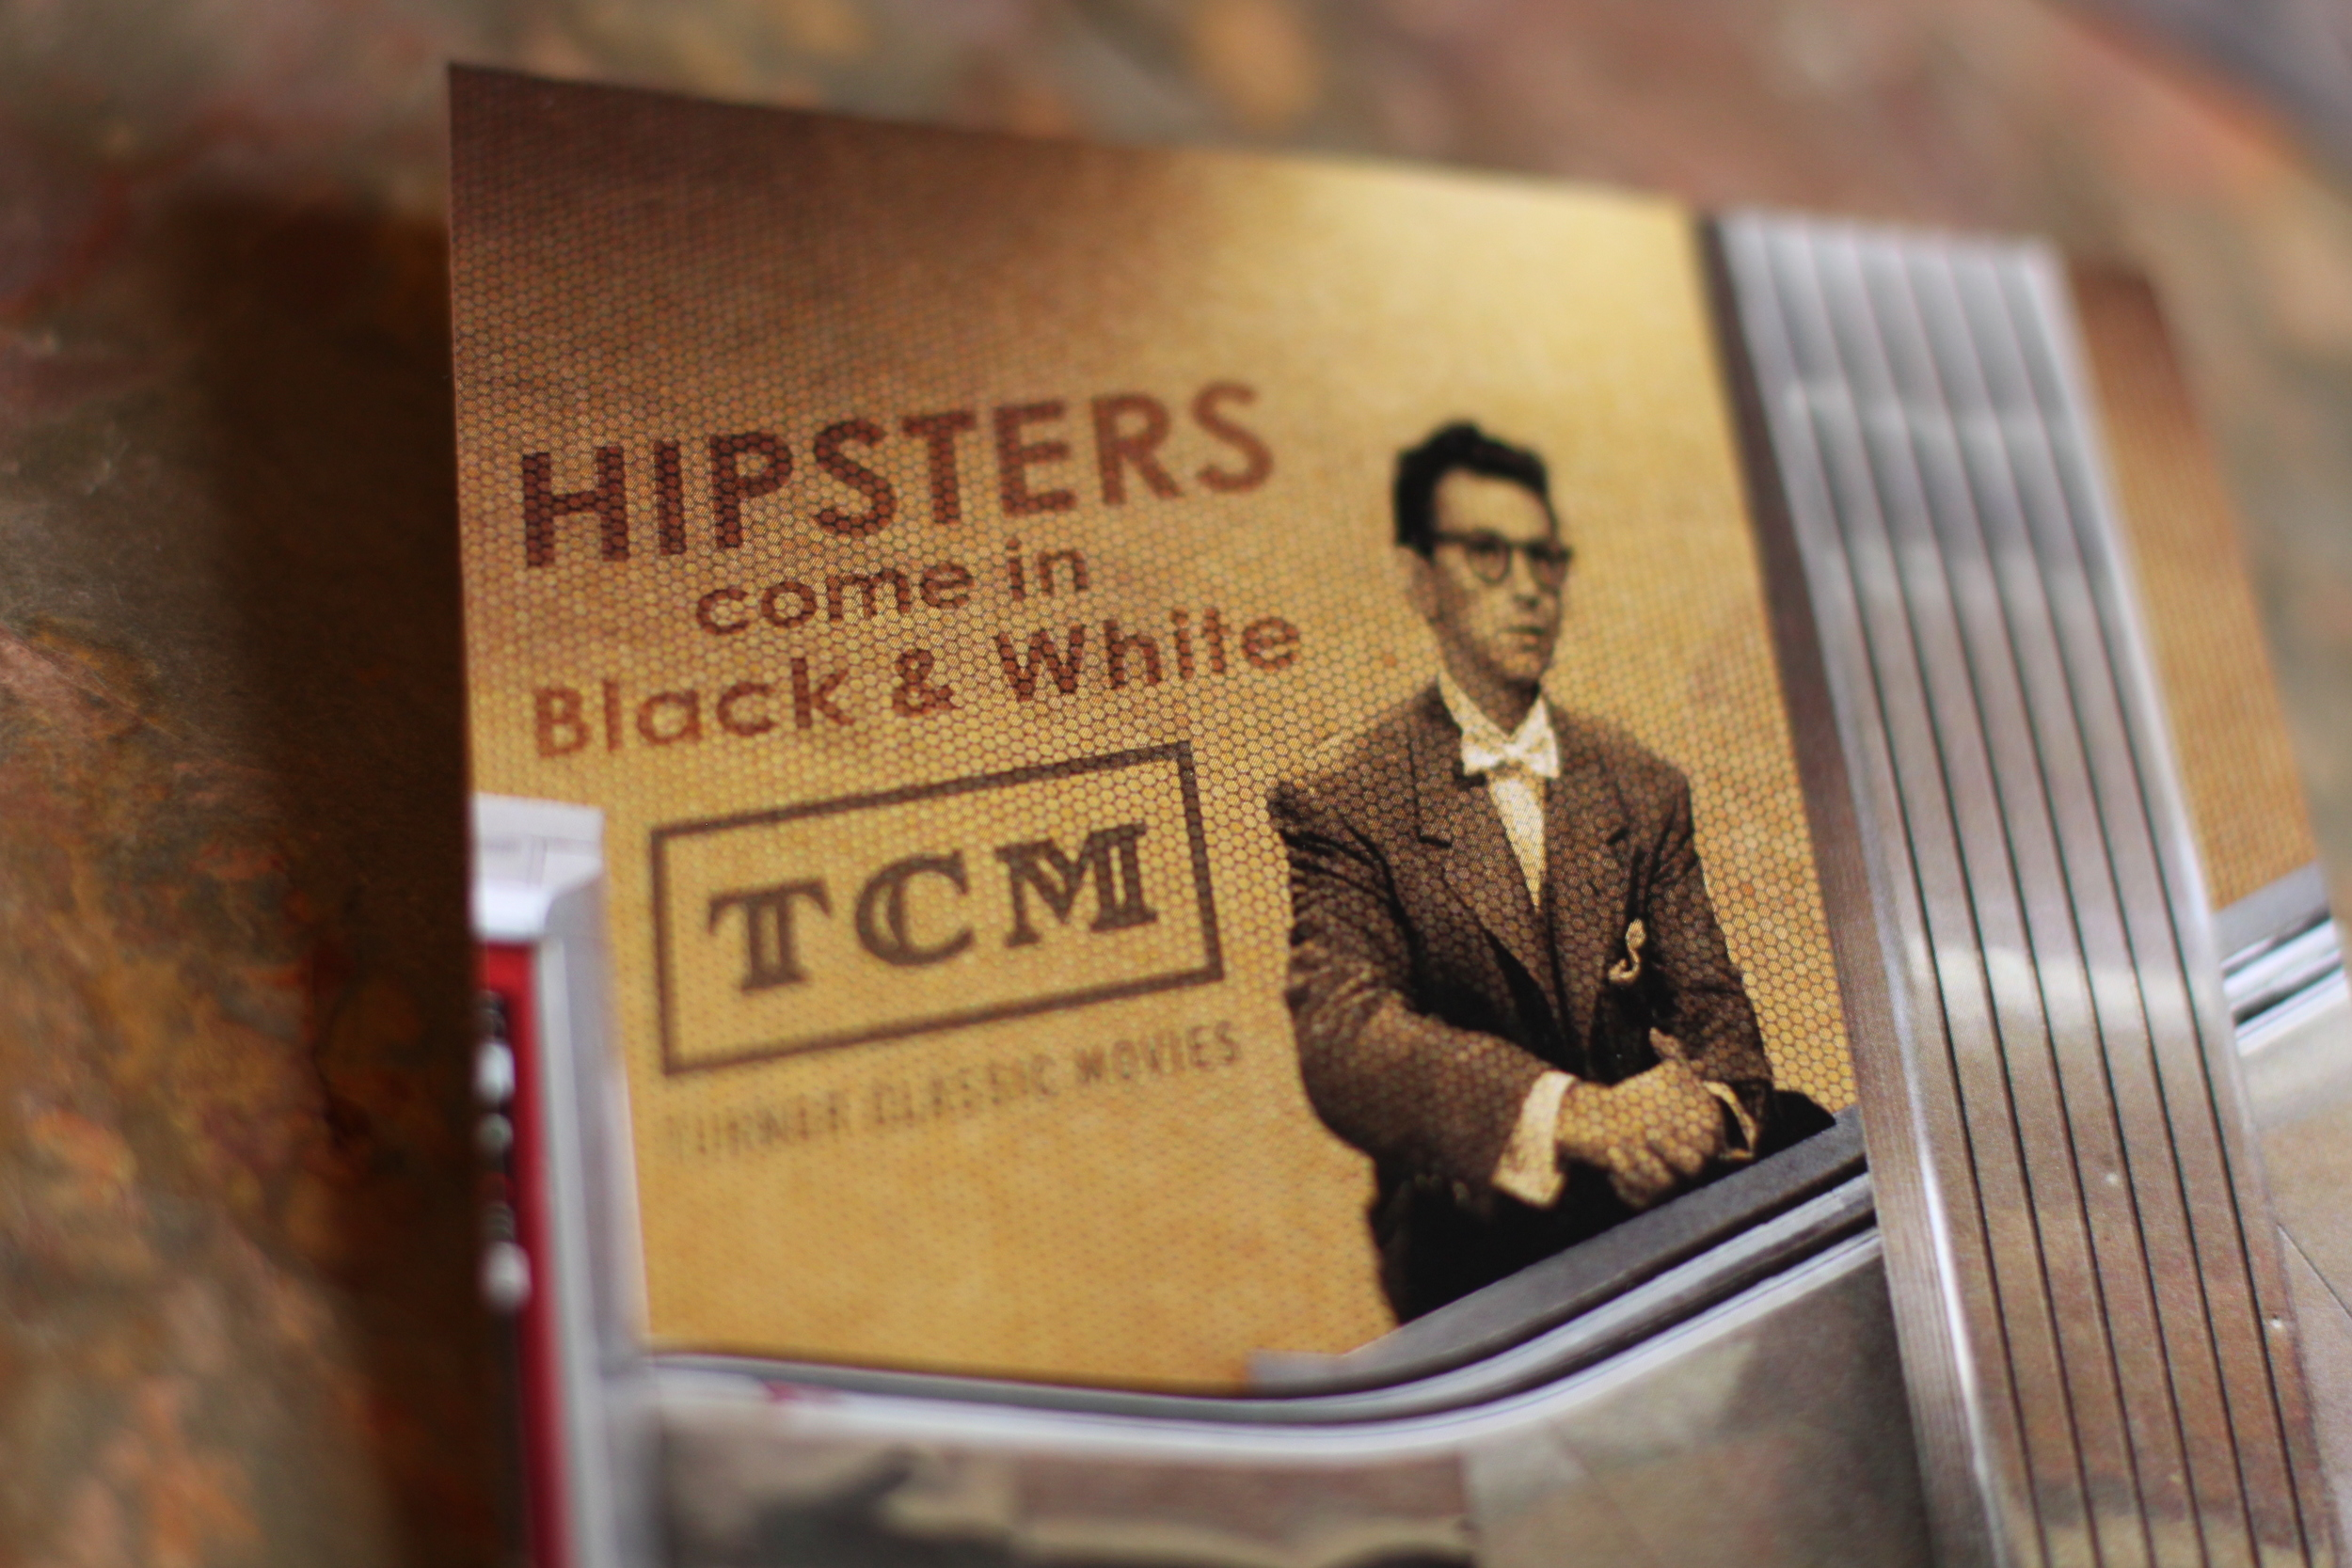 "TCM (Turner Classic Movies) Ad Campaign Poster Series ""Hipsters come in Black & White"" Original Copy *For School Use Only *Photographs of piece by: Alexander Suder"